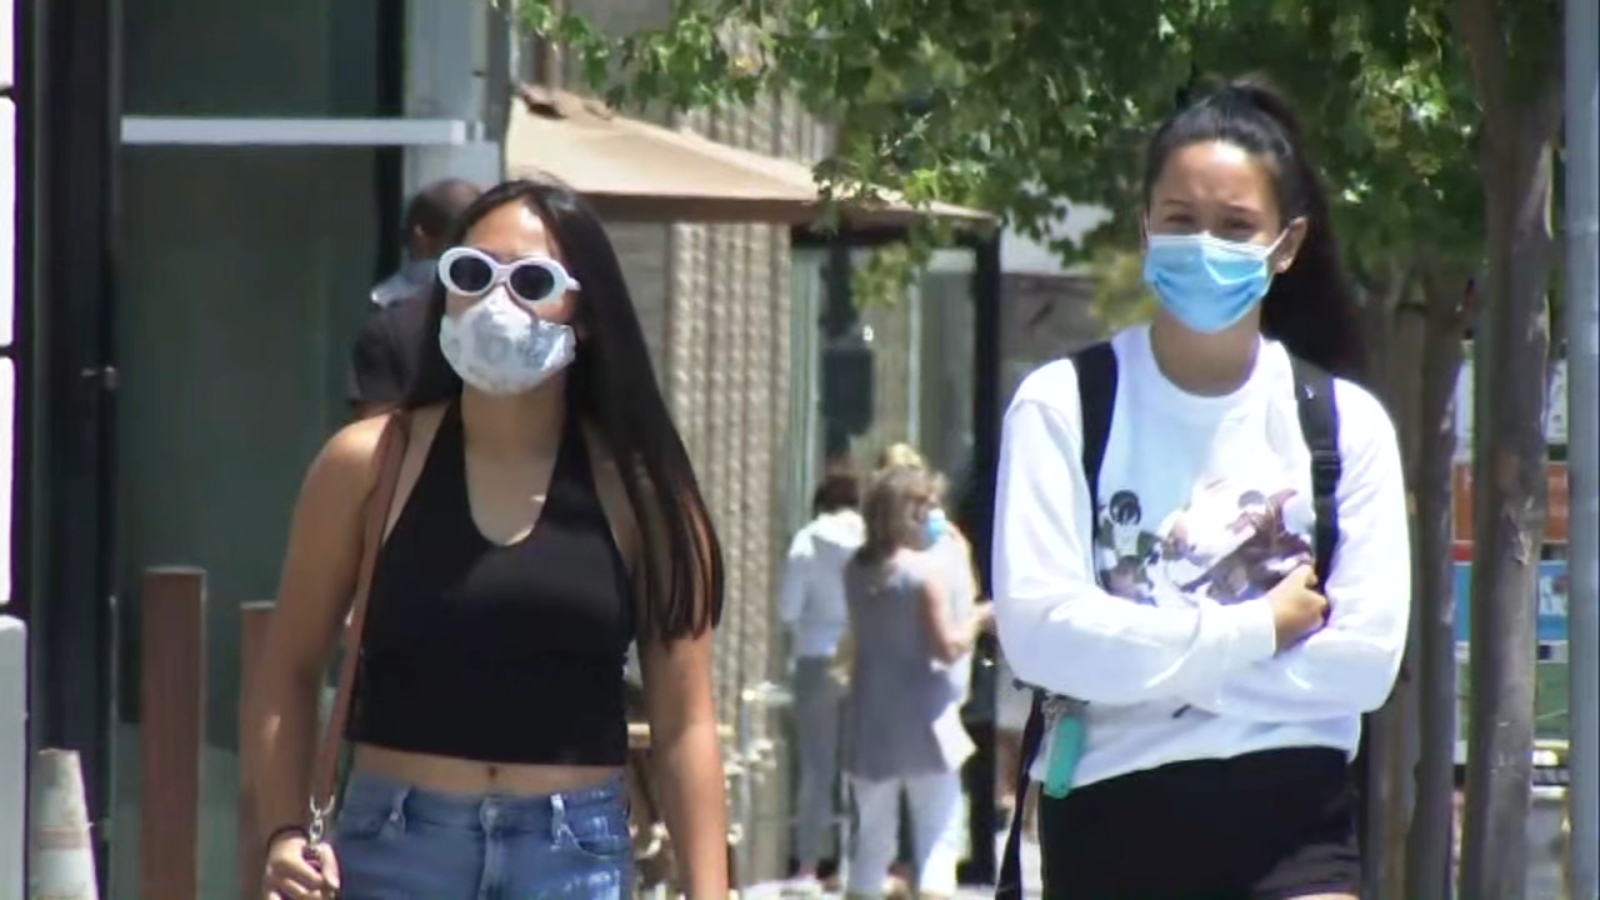 CDC eases mask-wearing for vaccinated, but Bay Area health official says not so fast